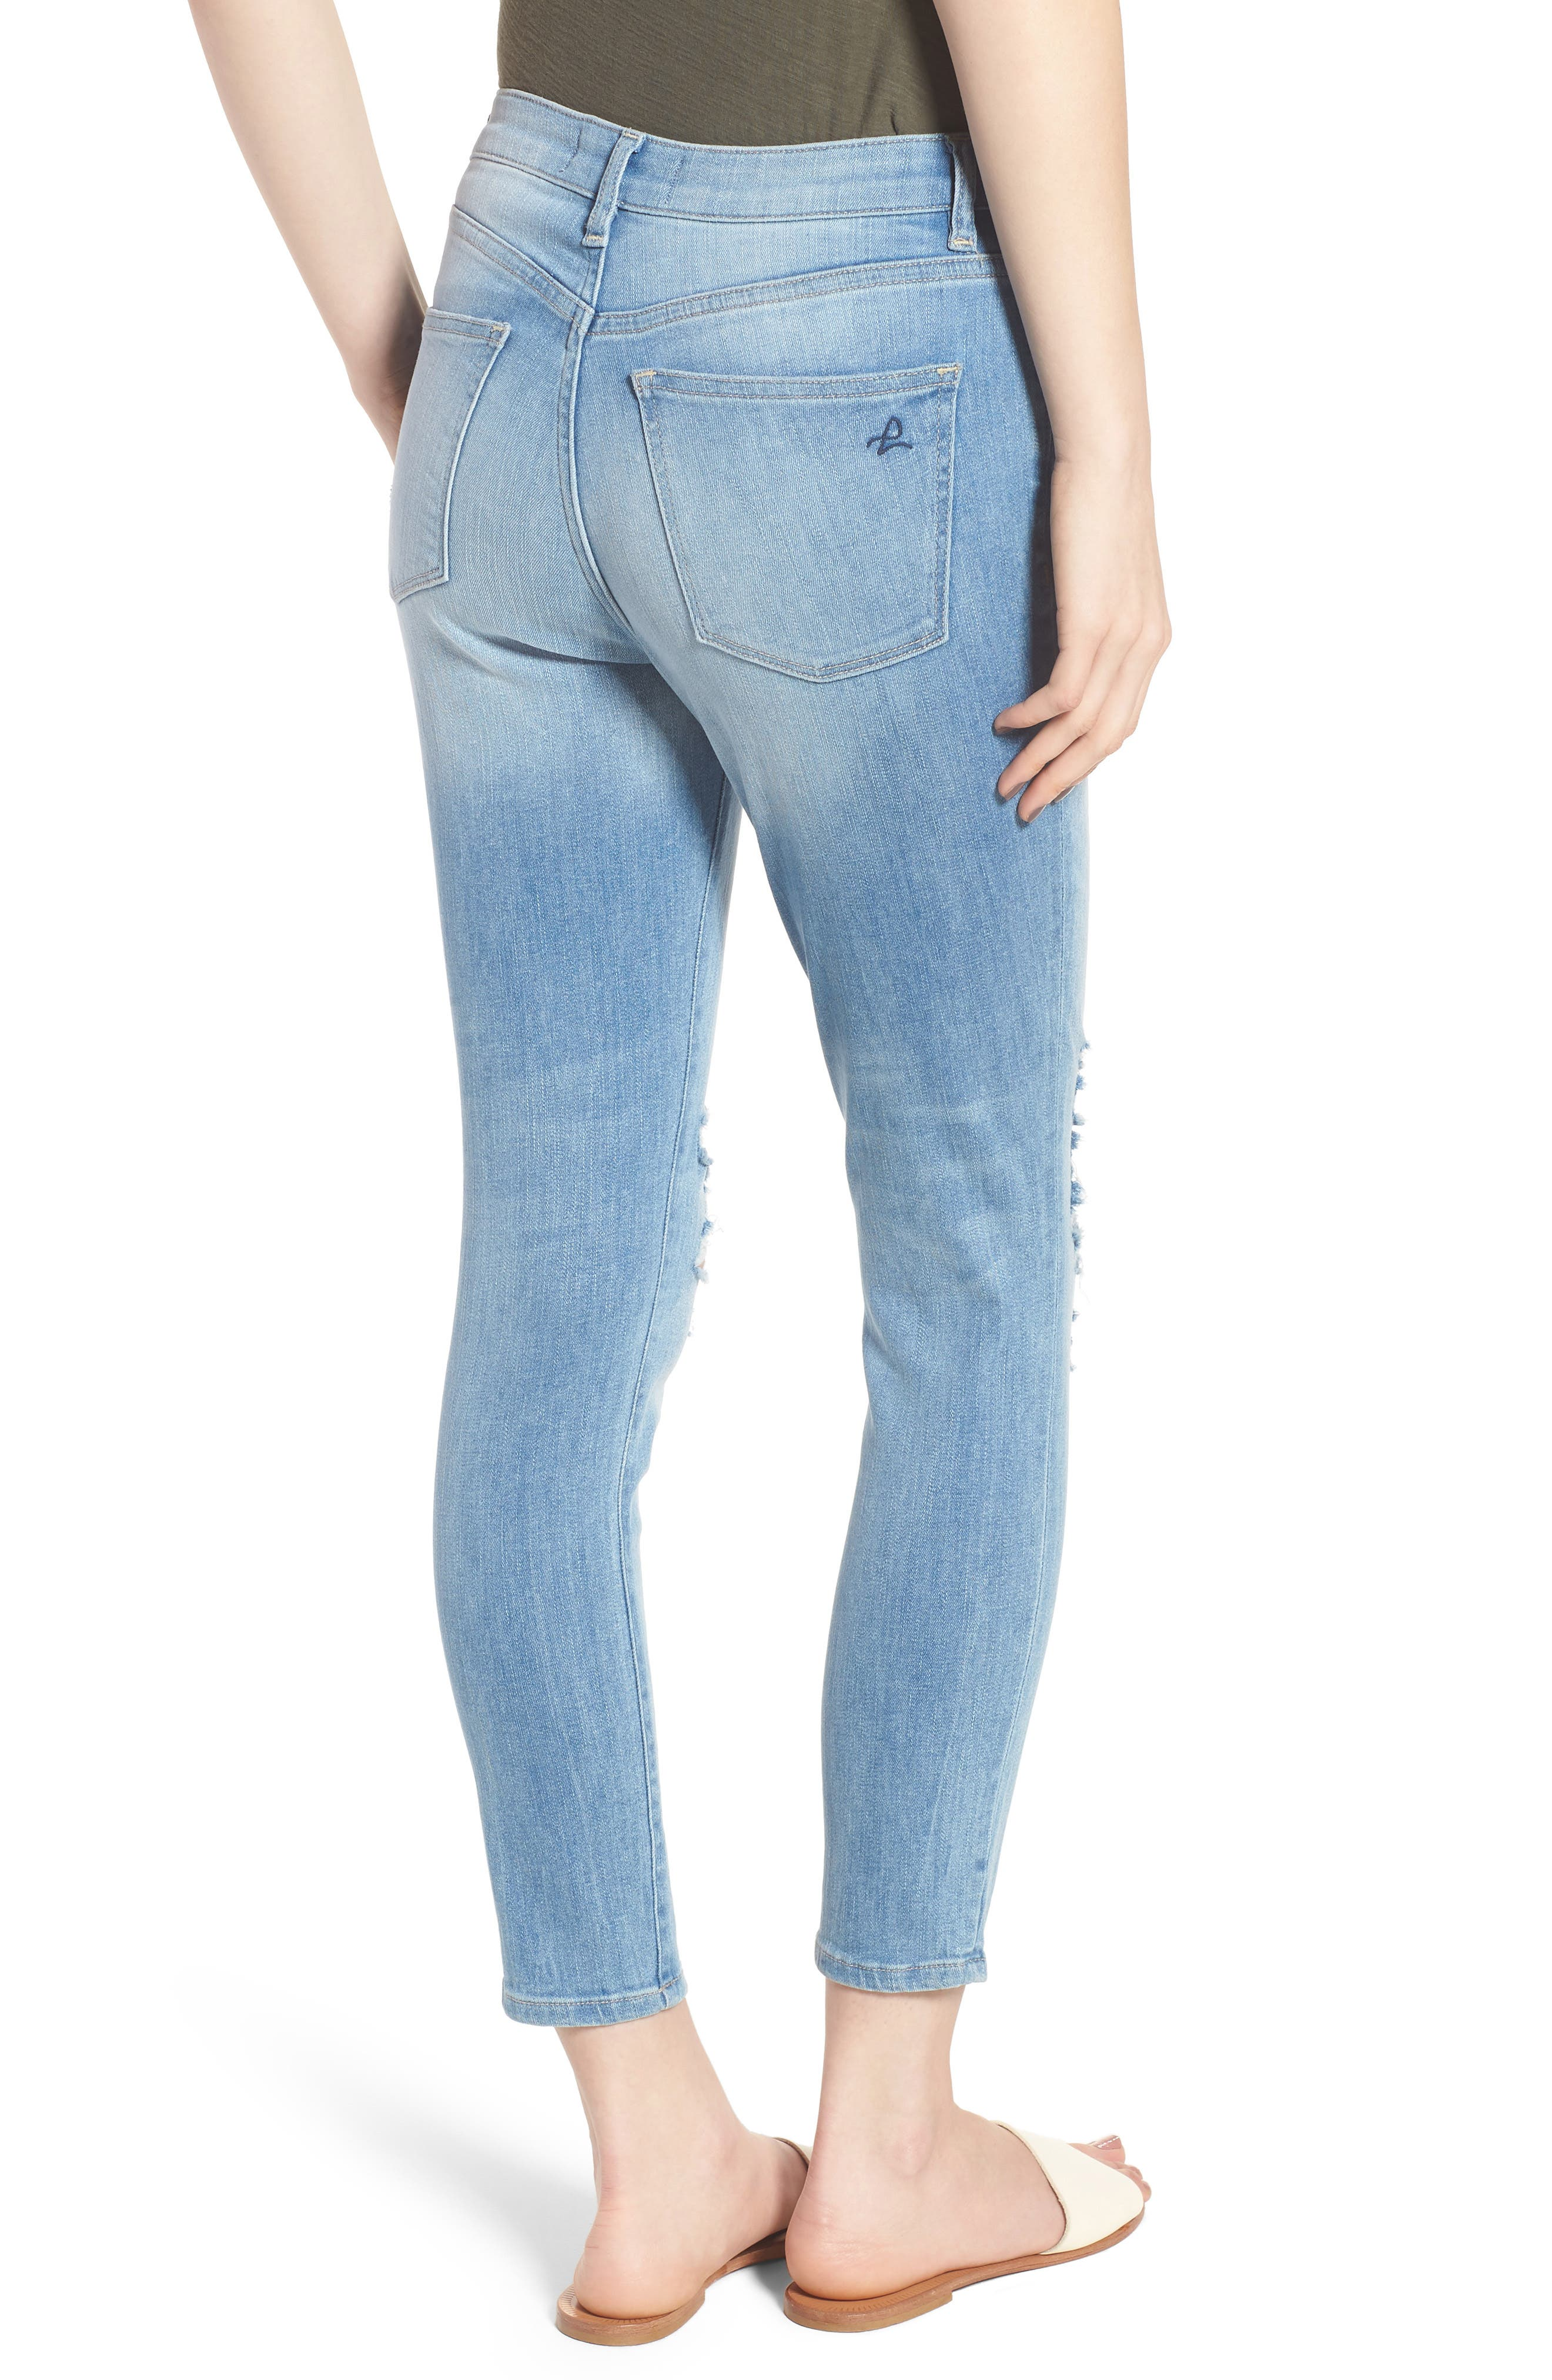 Chrissy Trimtone Ripped High Waist Skinny Jeans,                             Alternate thumbnail 2, color,                             430